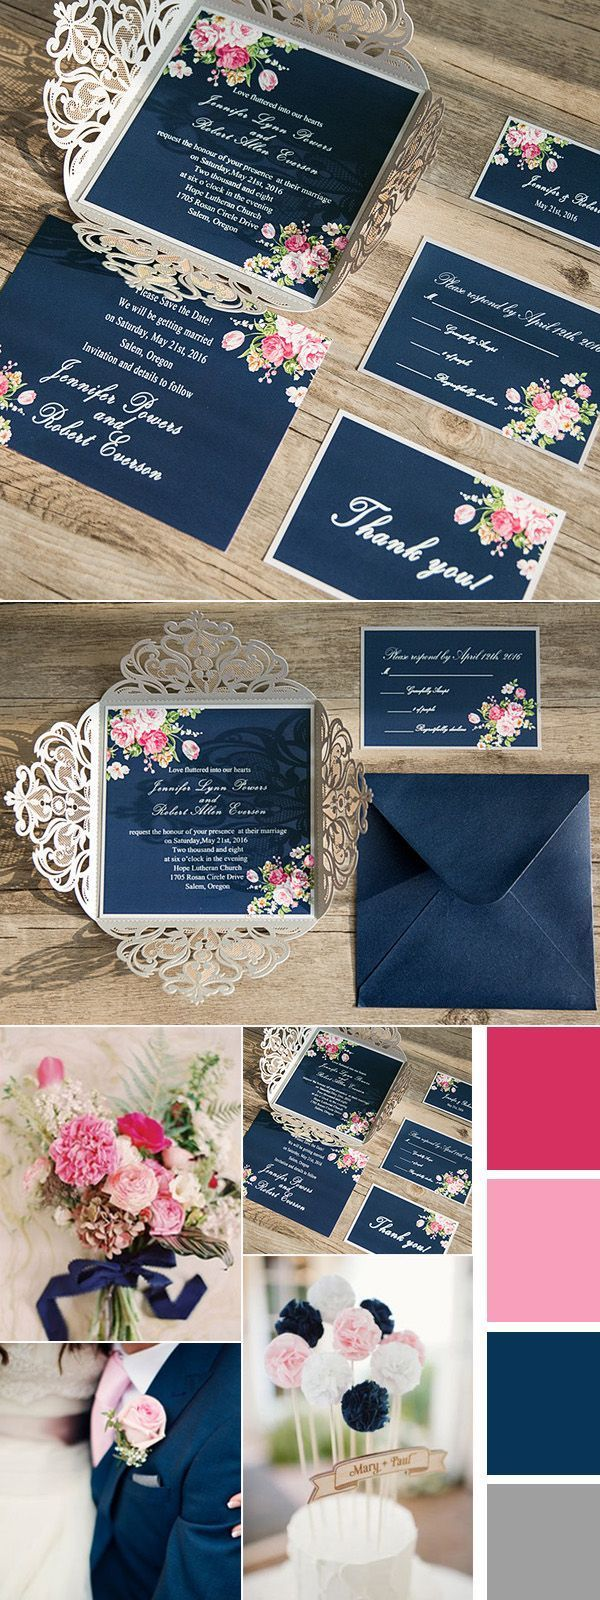 luxury wedding invitations dallas%0A Shabby Chic Floral Navy Blue and Pink Wedding Colors Inspired Laser Cut Wedding  Invitations  elegantwinvites